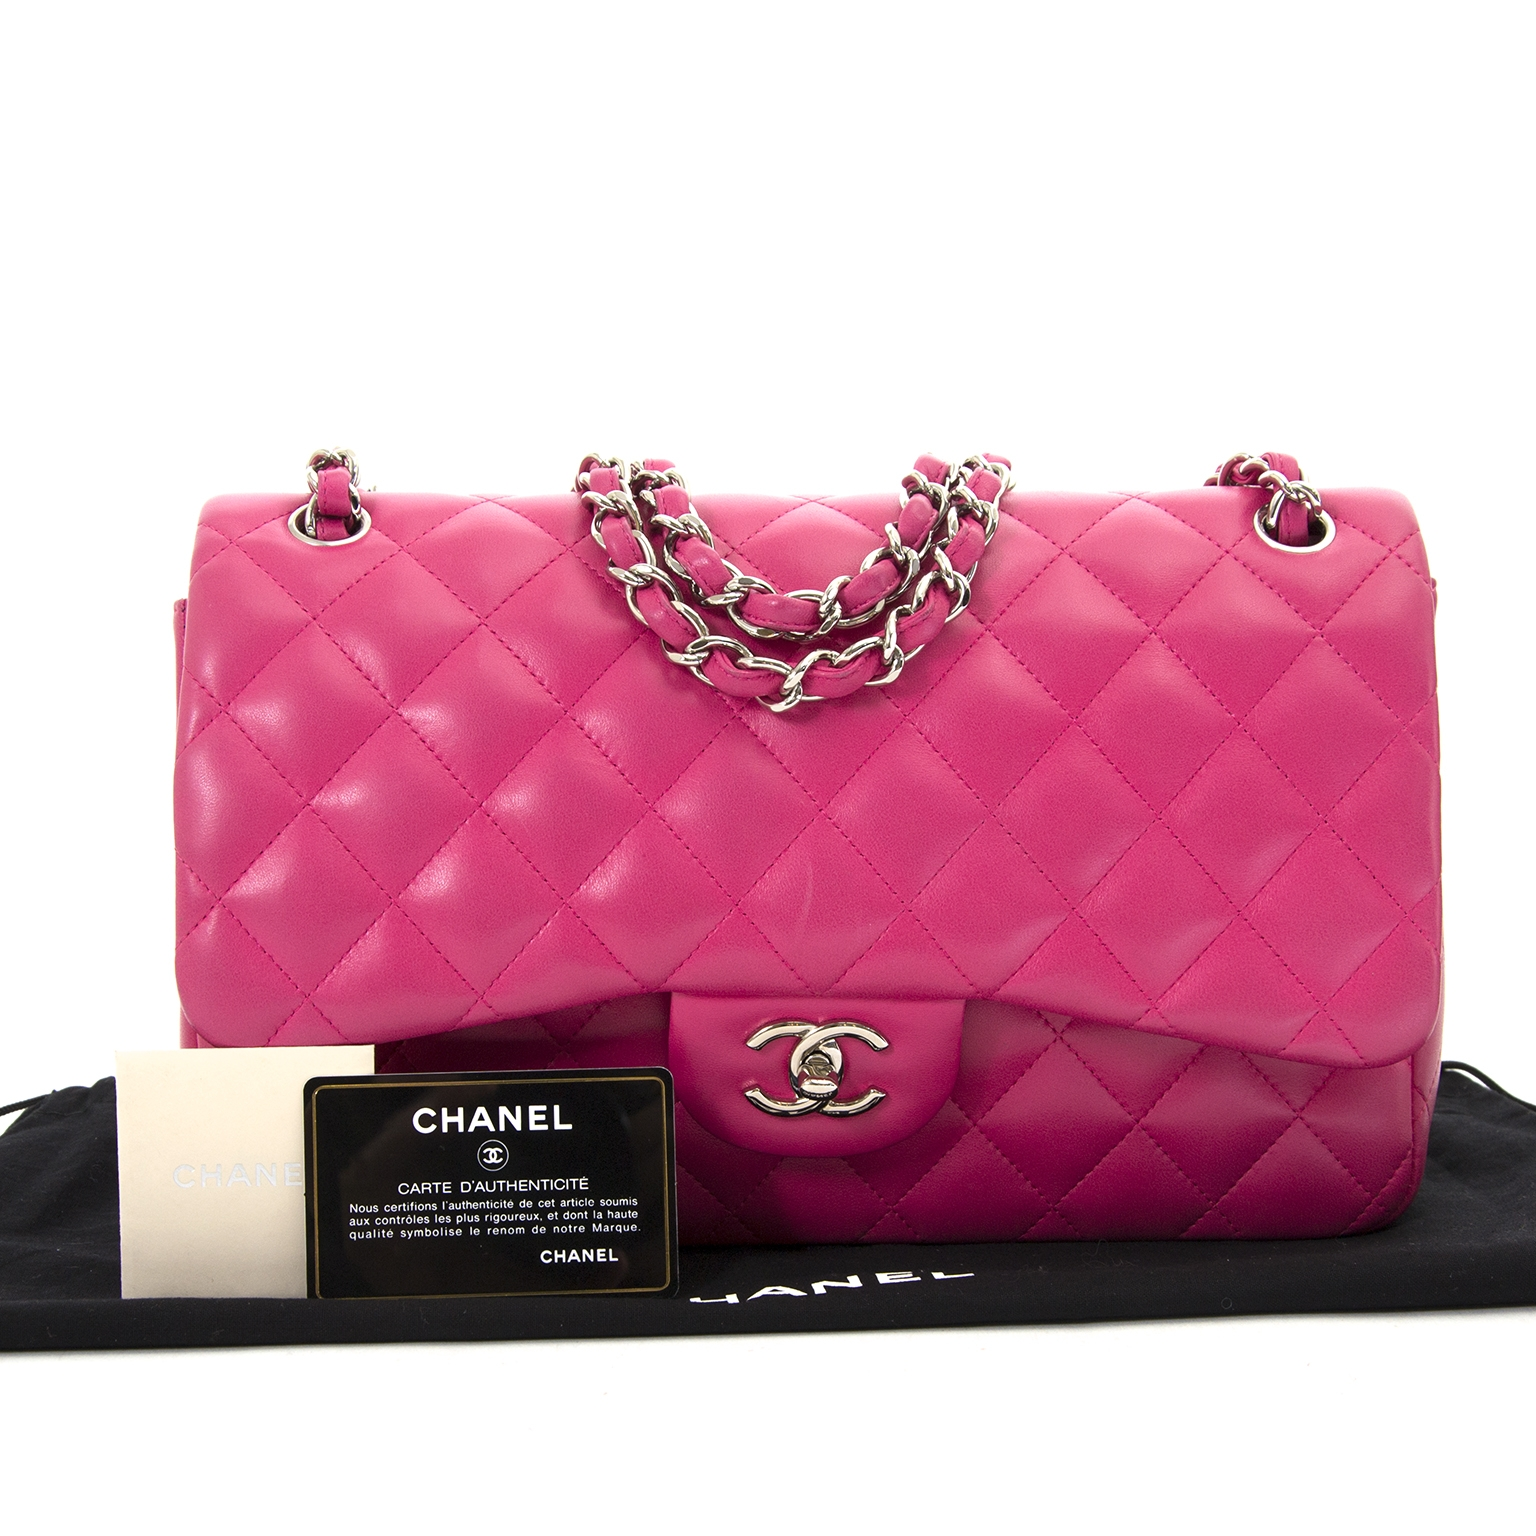 100% authentic Chanel Bubblegum Pink Jumbo Double Classic Flap Bag PHW available for the best price of 2018 at Labellov